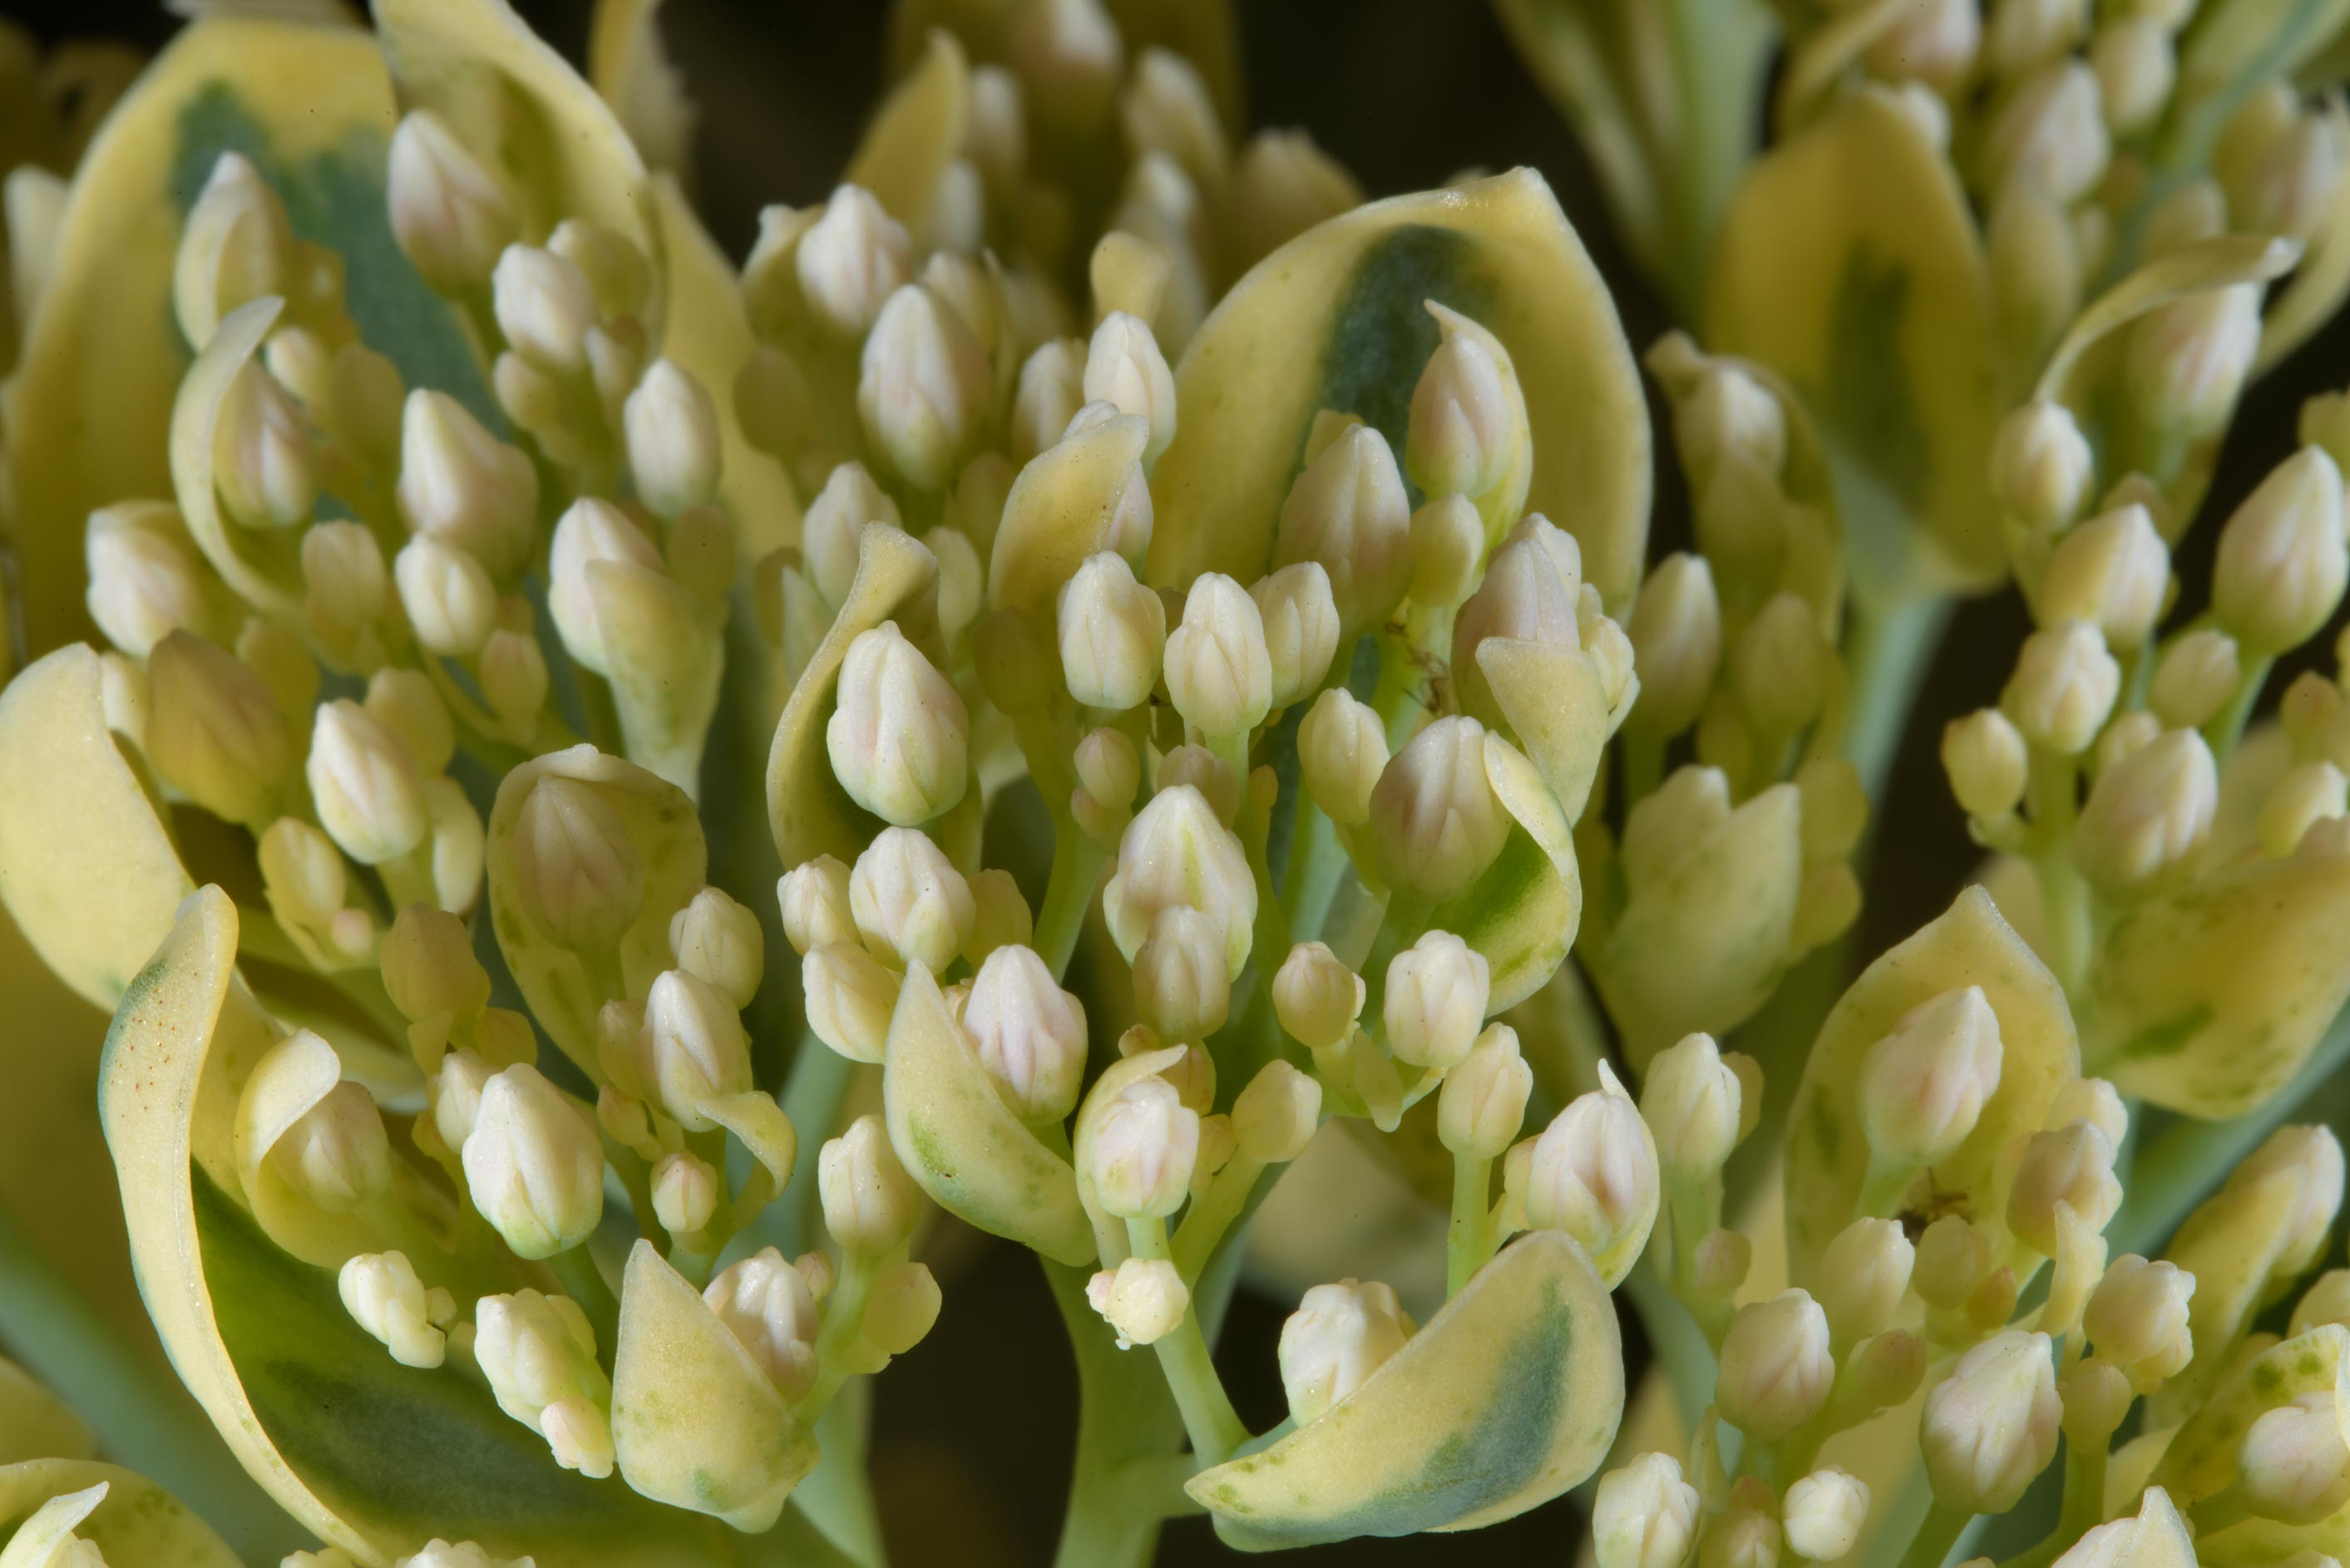 Sedum flower buds in Botanic Gardens of Komarov Botanical Institute. St.Petersburg, Russia